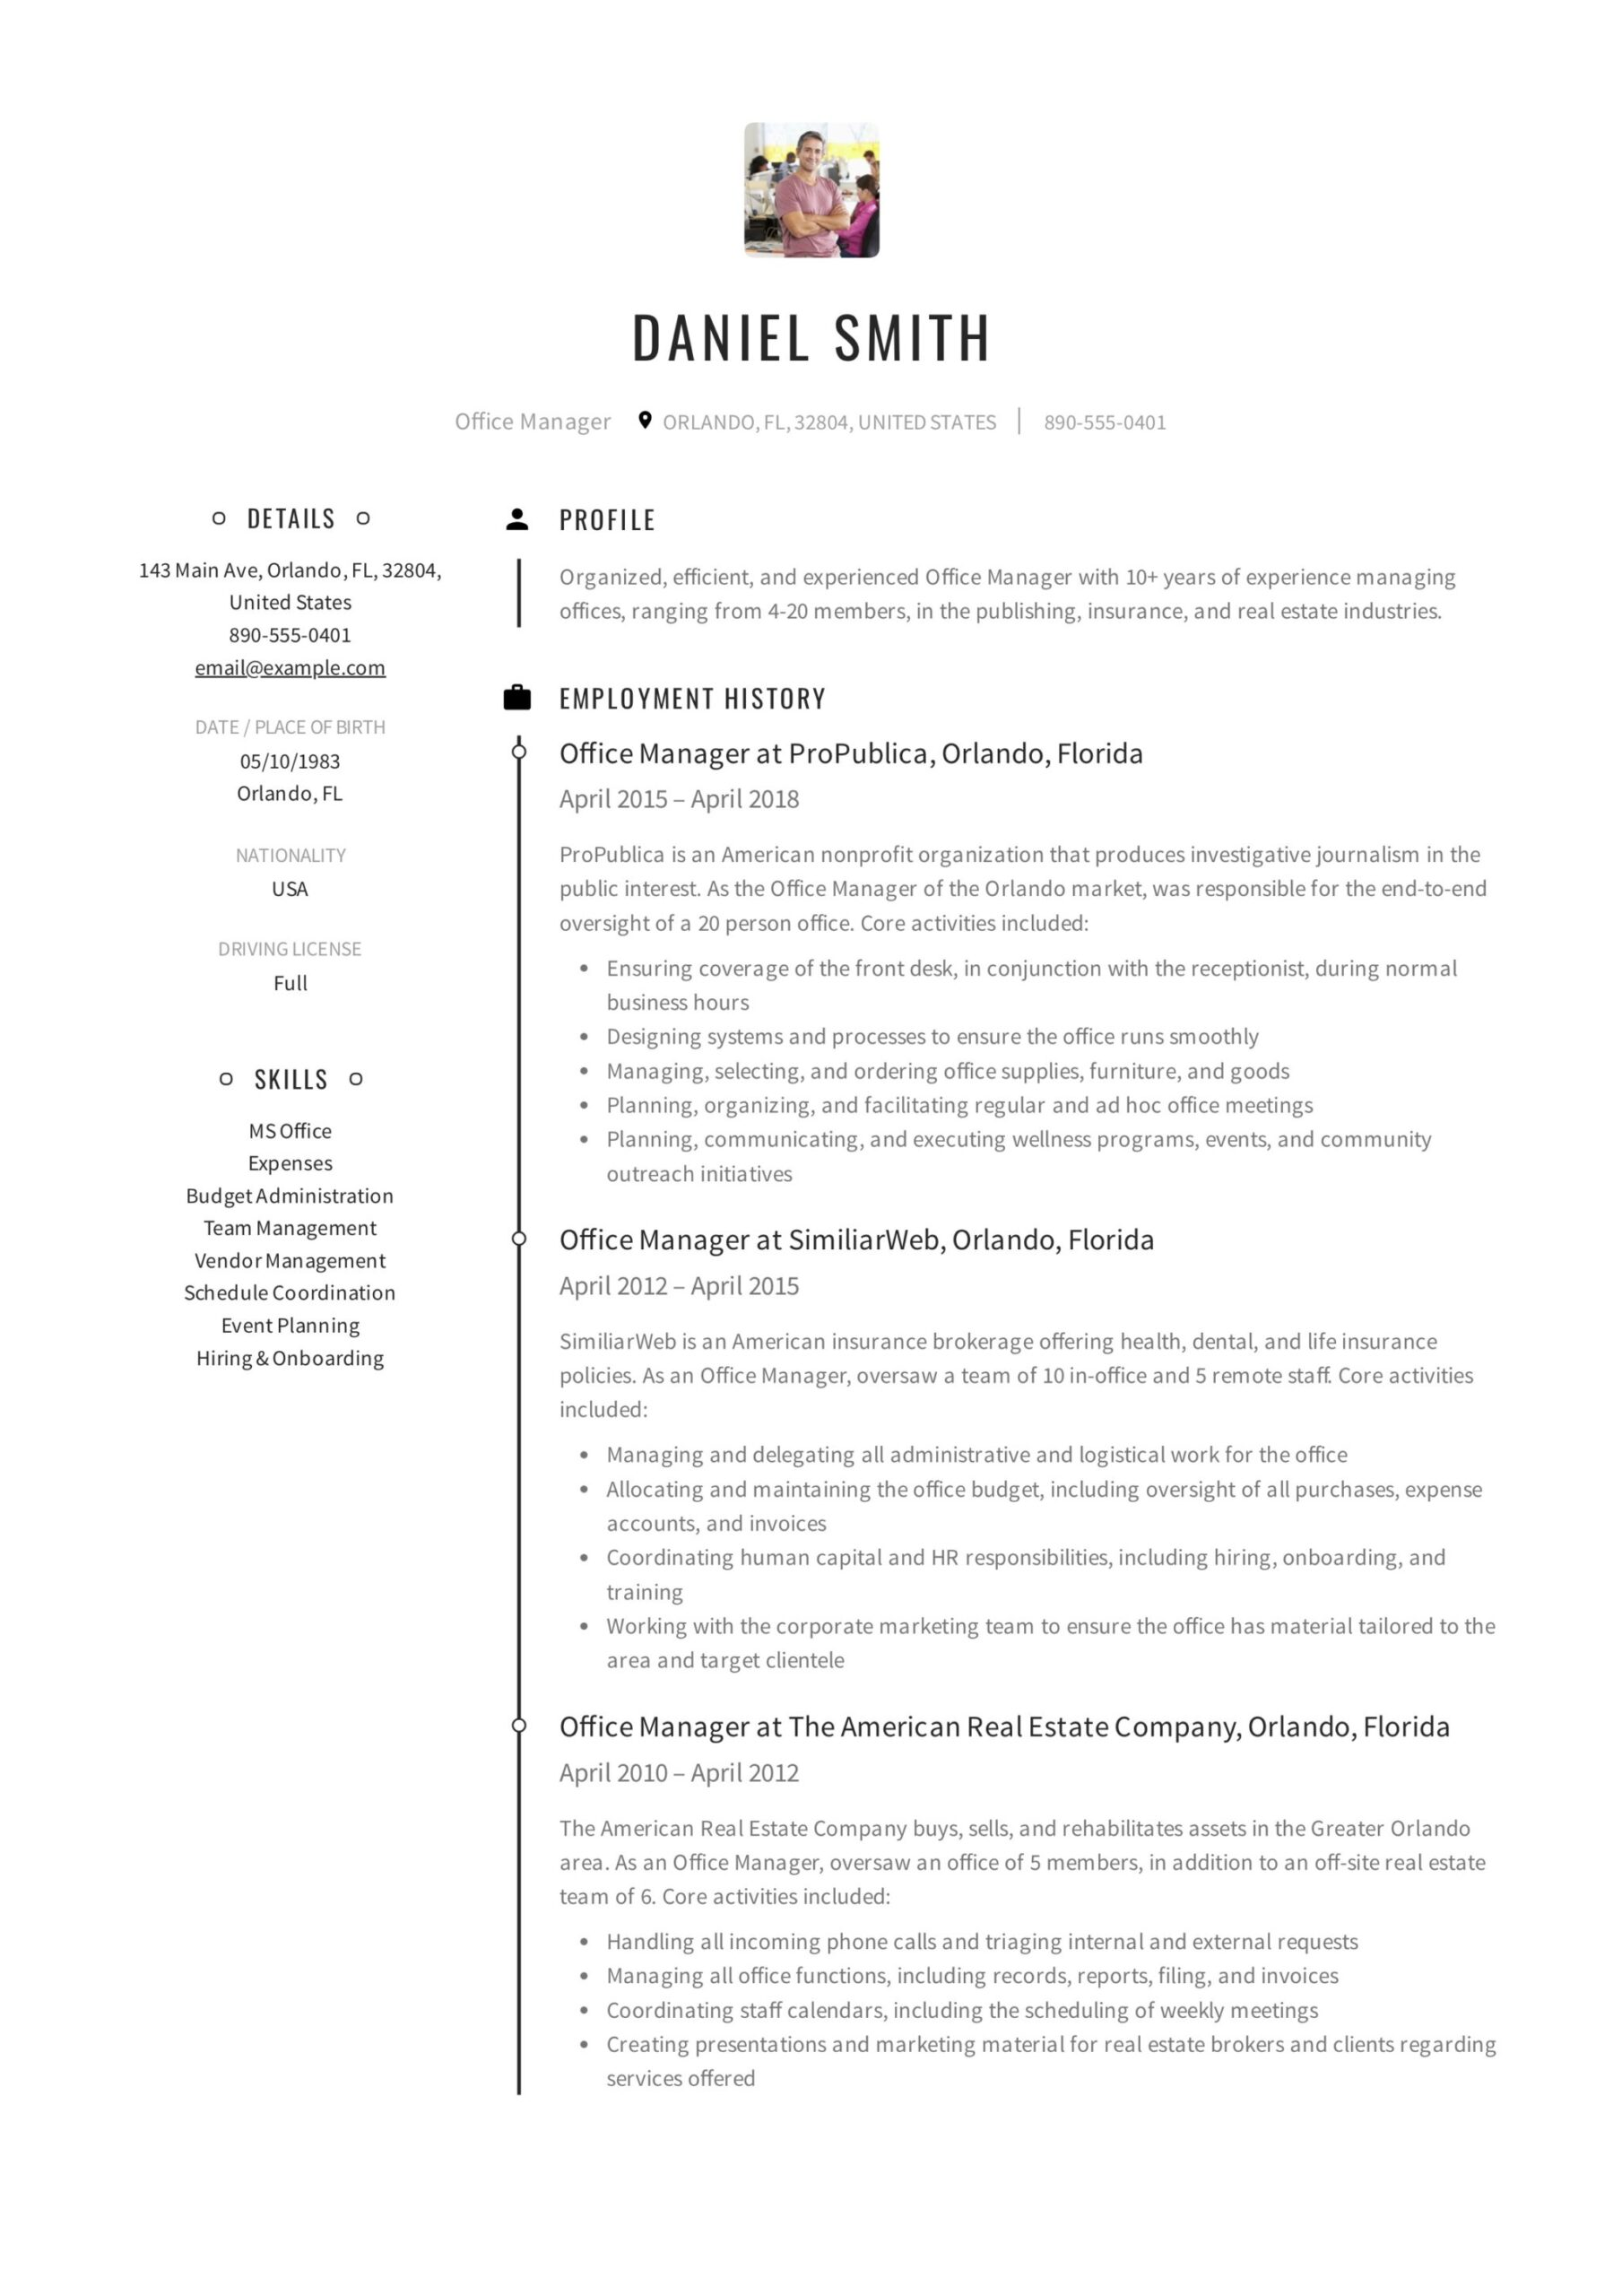 office manager resume guide samples pdf best example massage therapist reporter examples Resume Best Office Manager Resume